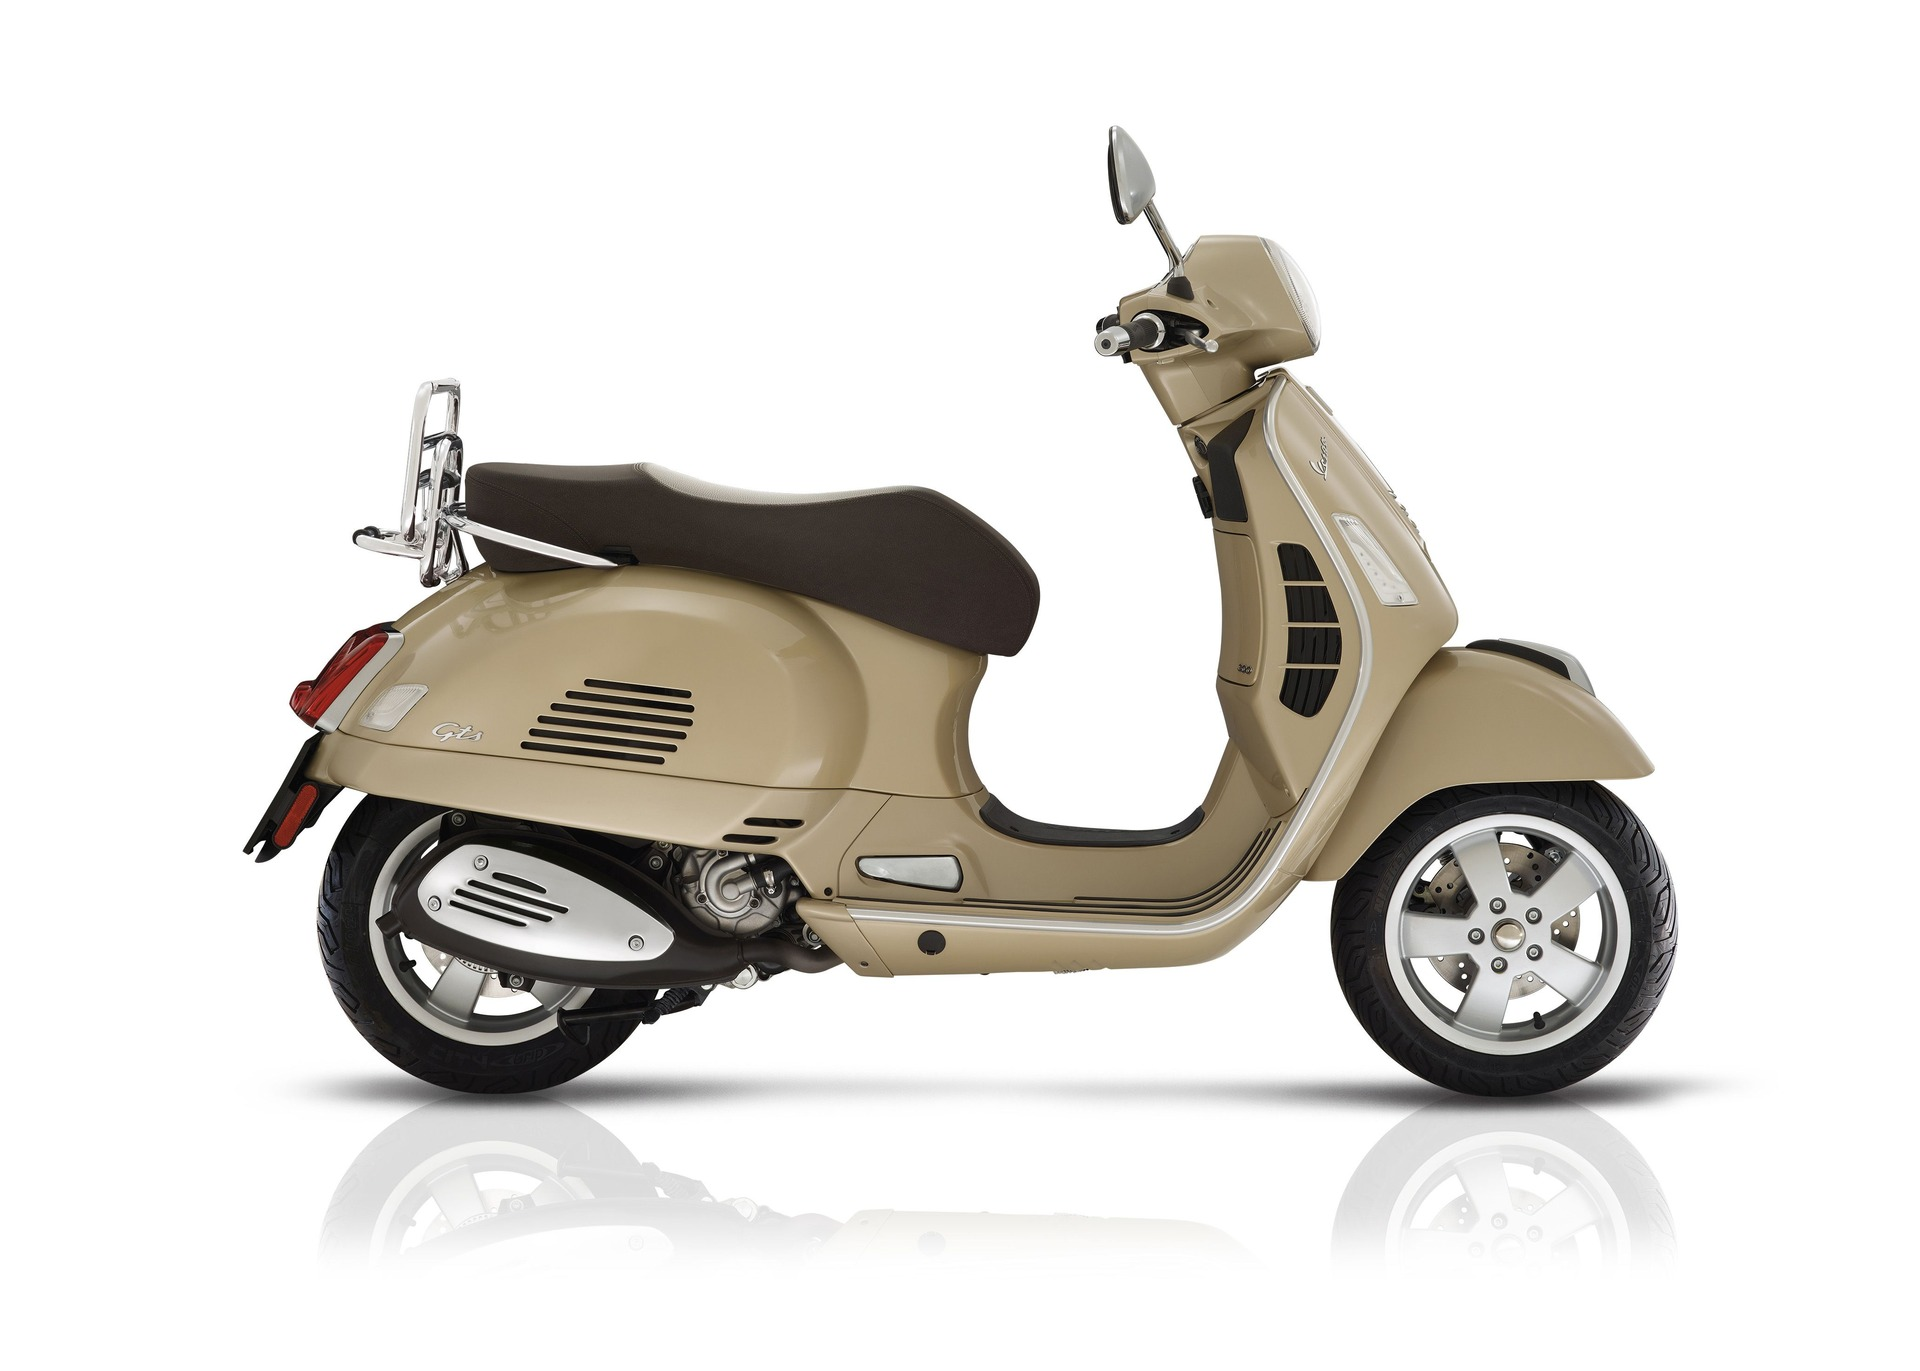 motorradkatalog motorrad kaufen vespa vespa 946 125. Black Bedroom Furniture Sets. Home Design Ideas